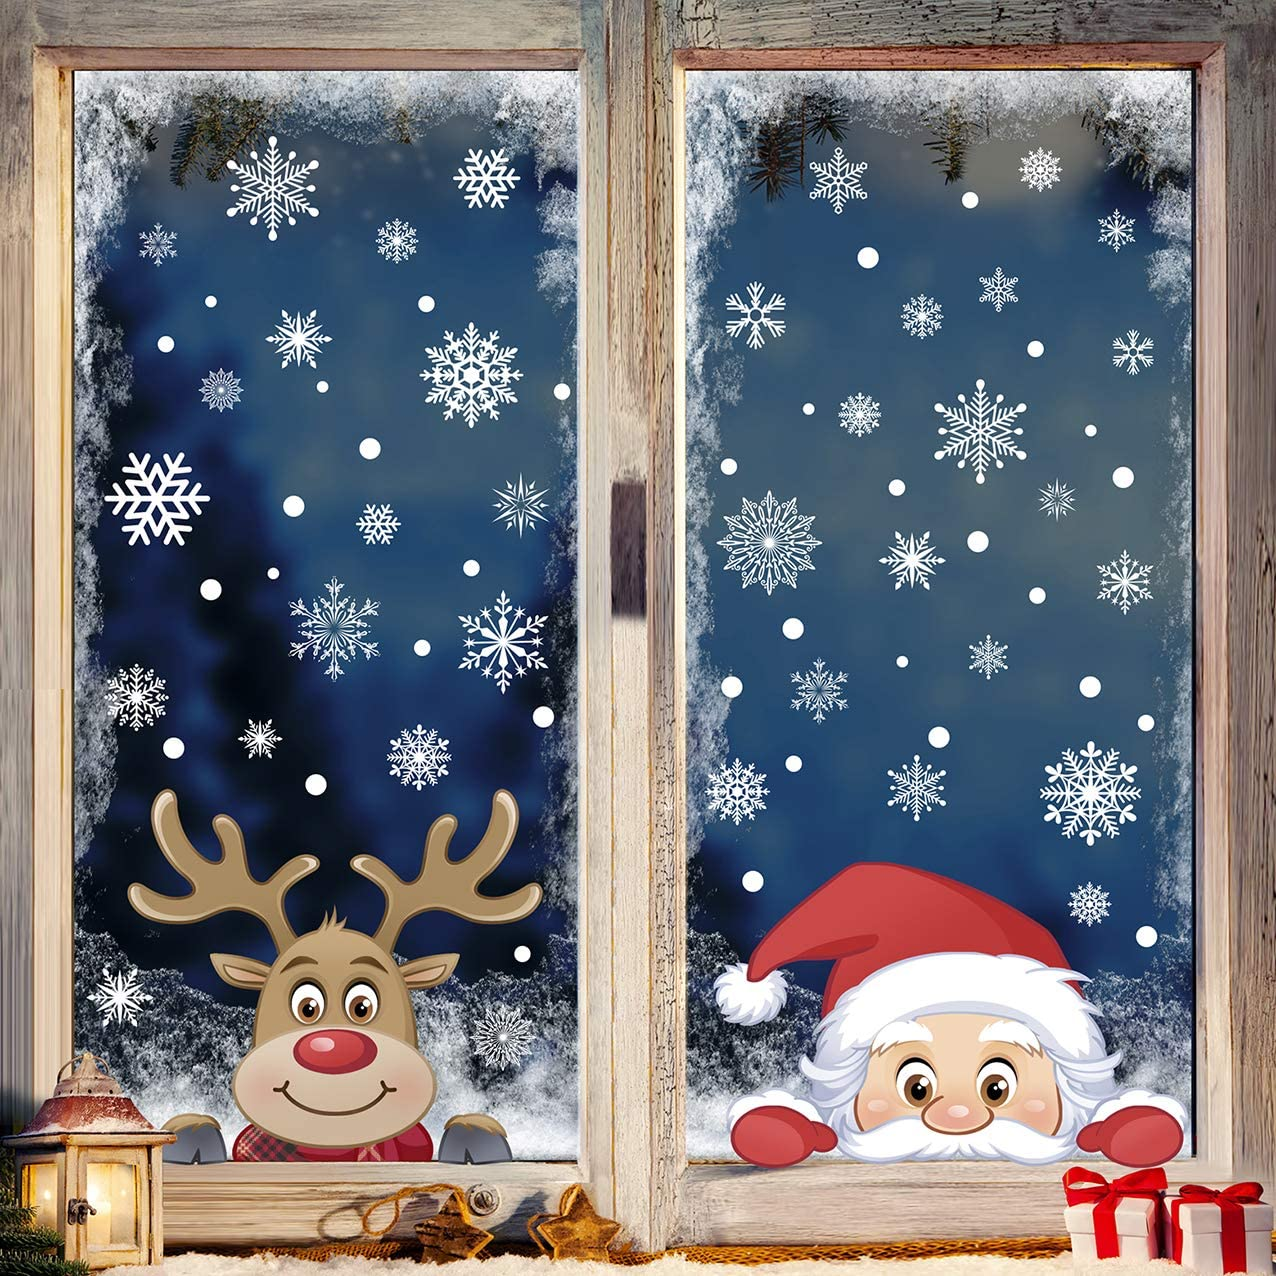 207pcs Christmas Snowflake Window Clings Decals Reindeer Santa Claus White Snowflakes Stickers Decorations for Holiday Merry Christmas Winter Frozen Theme Party Snow Xmas Decor